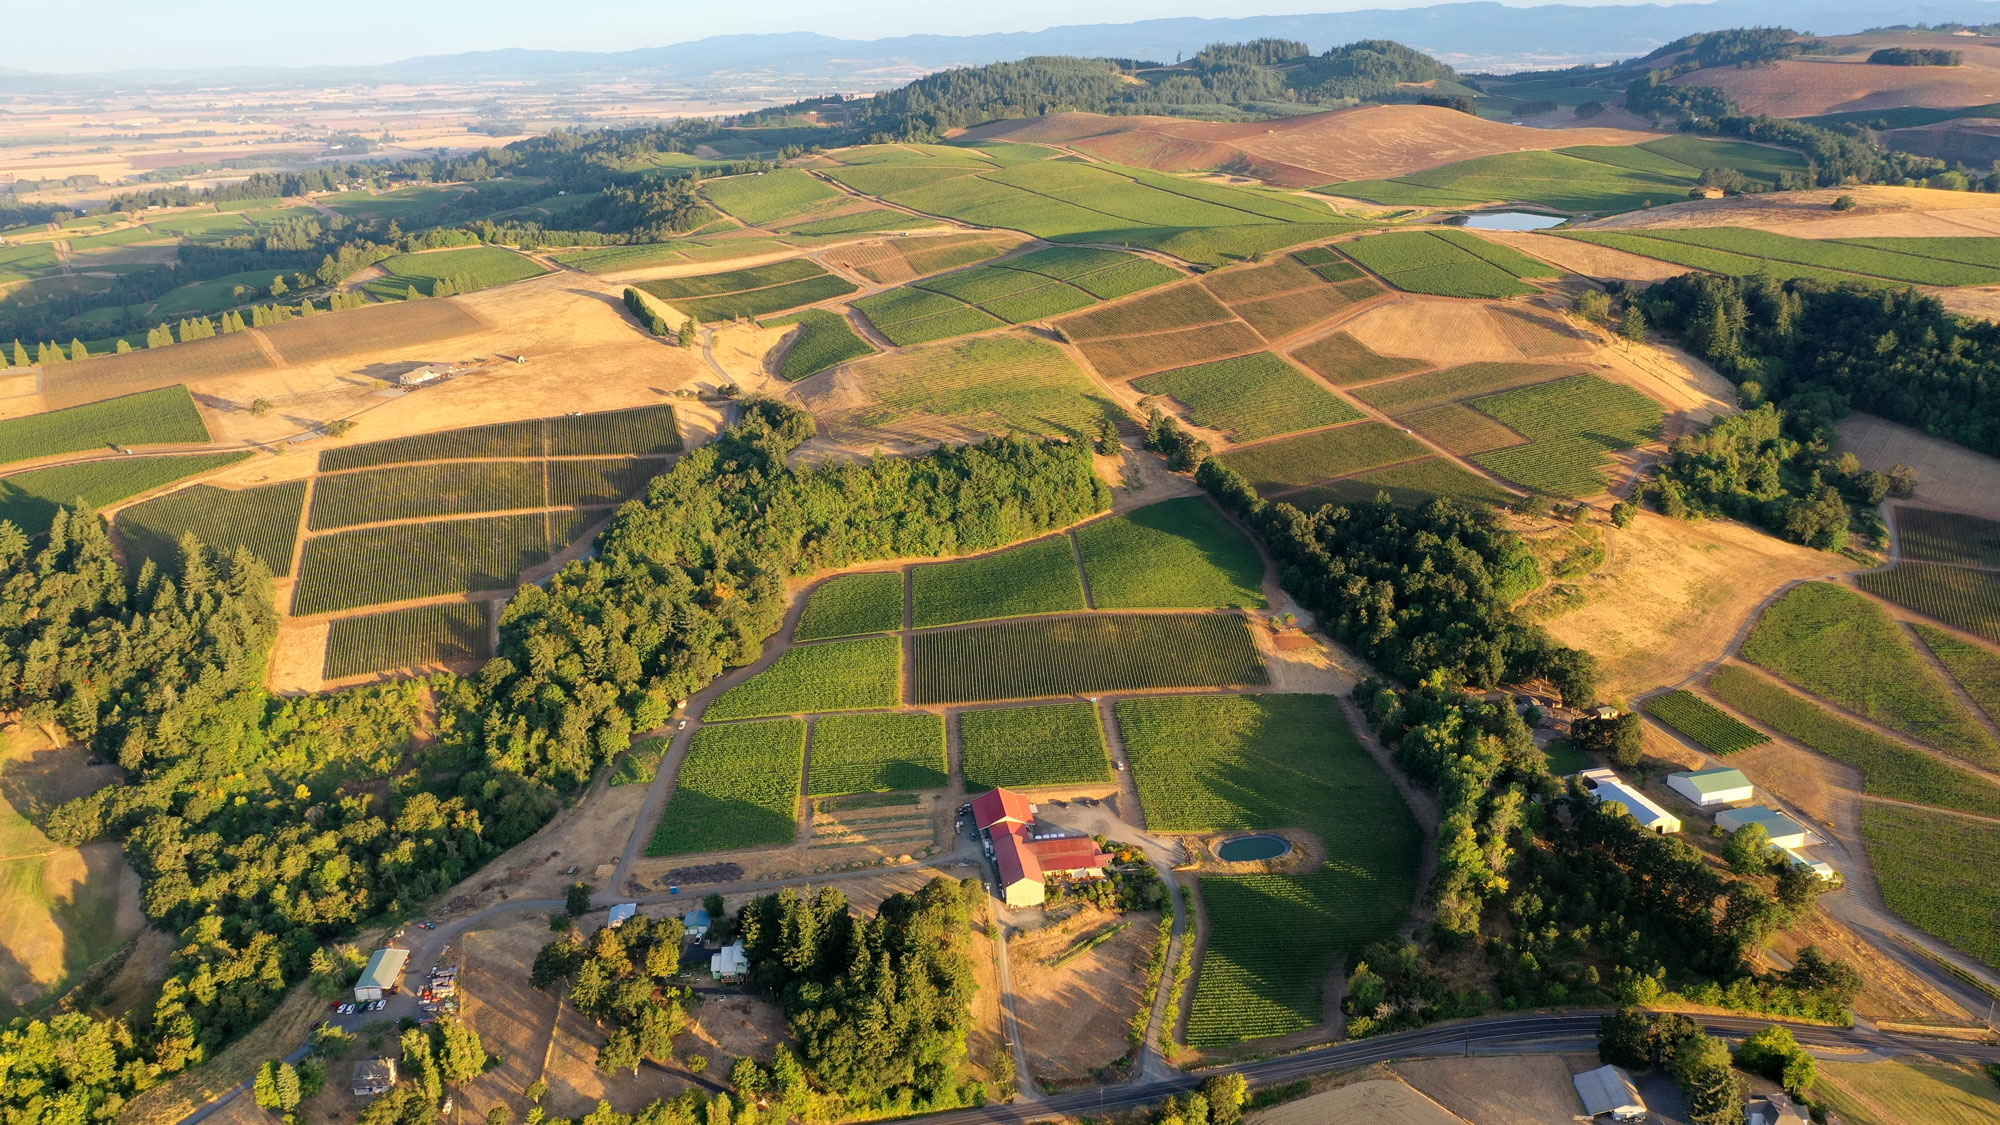 Cristom vineyards from the air